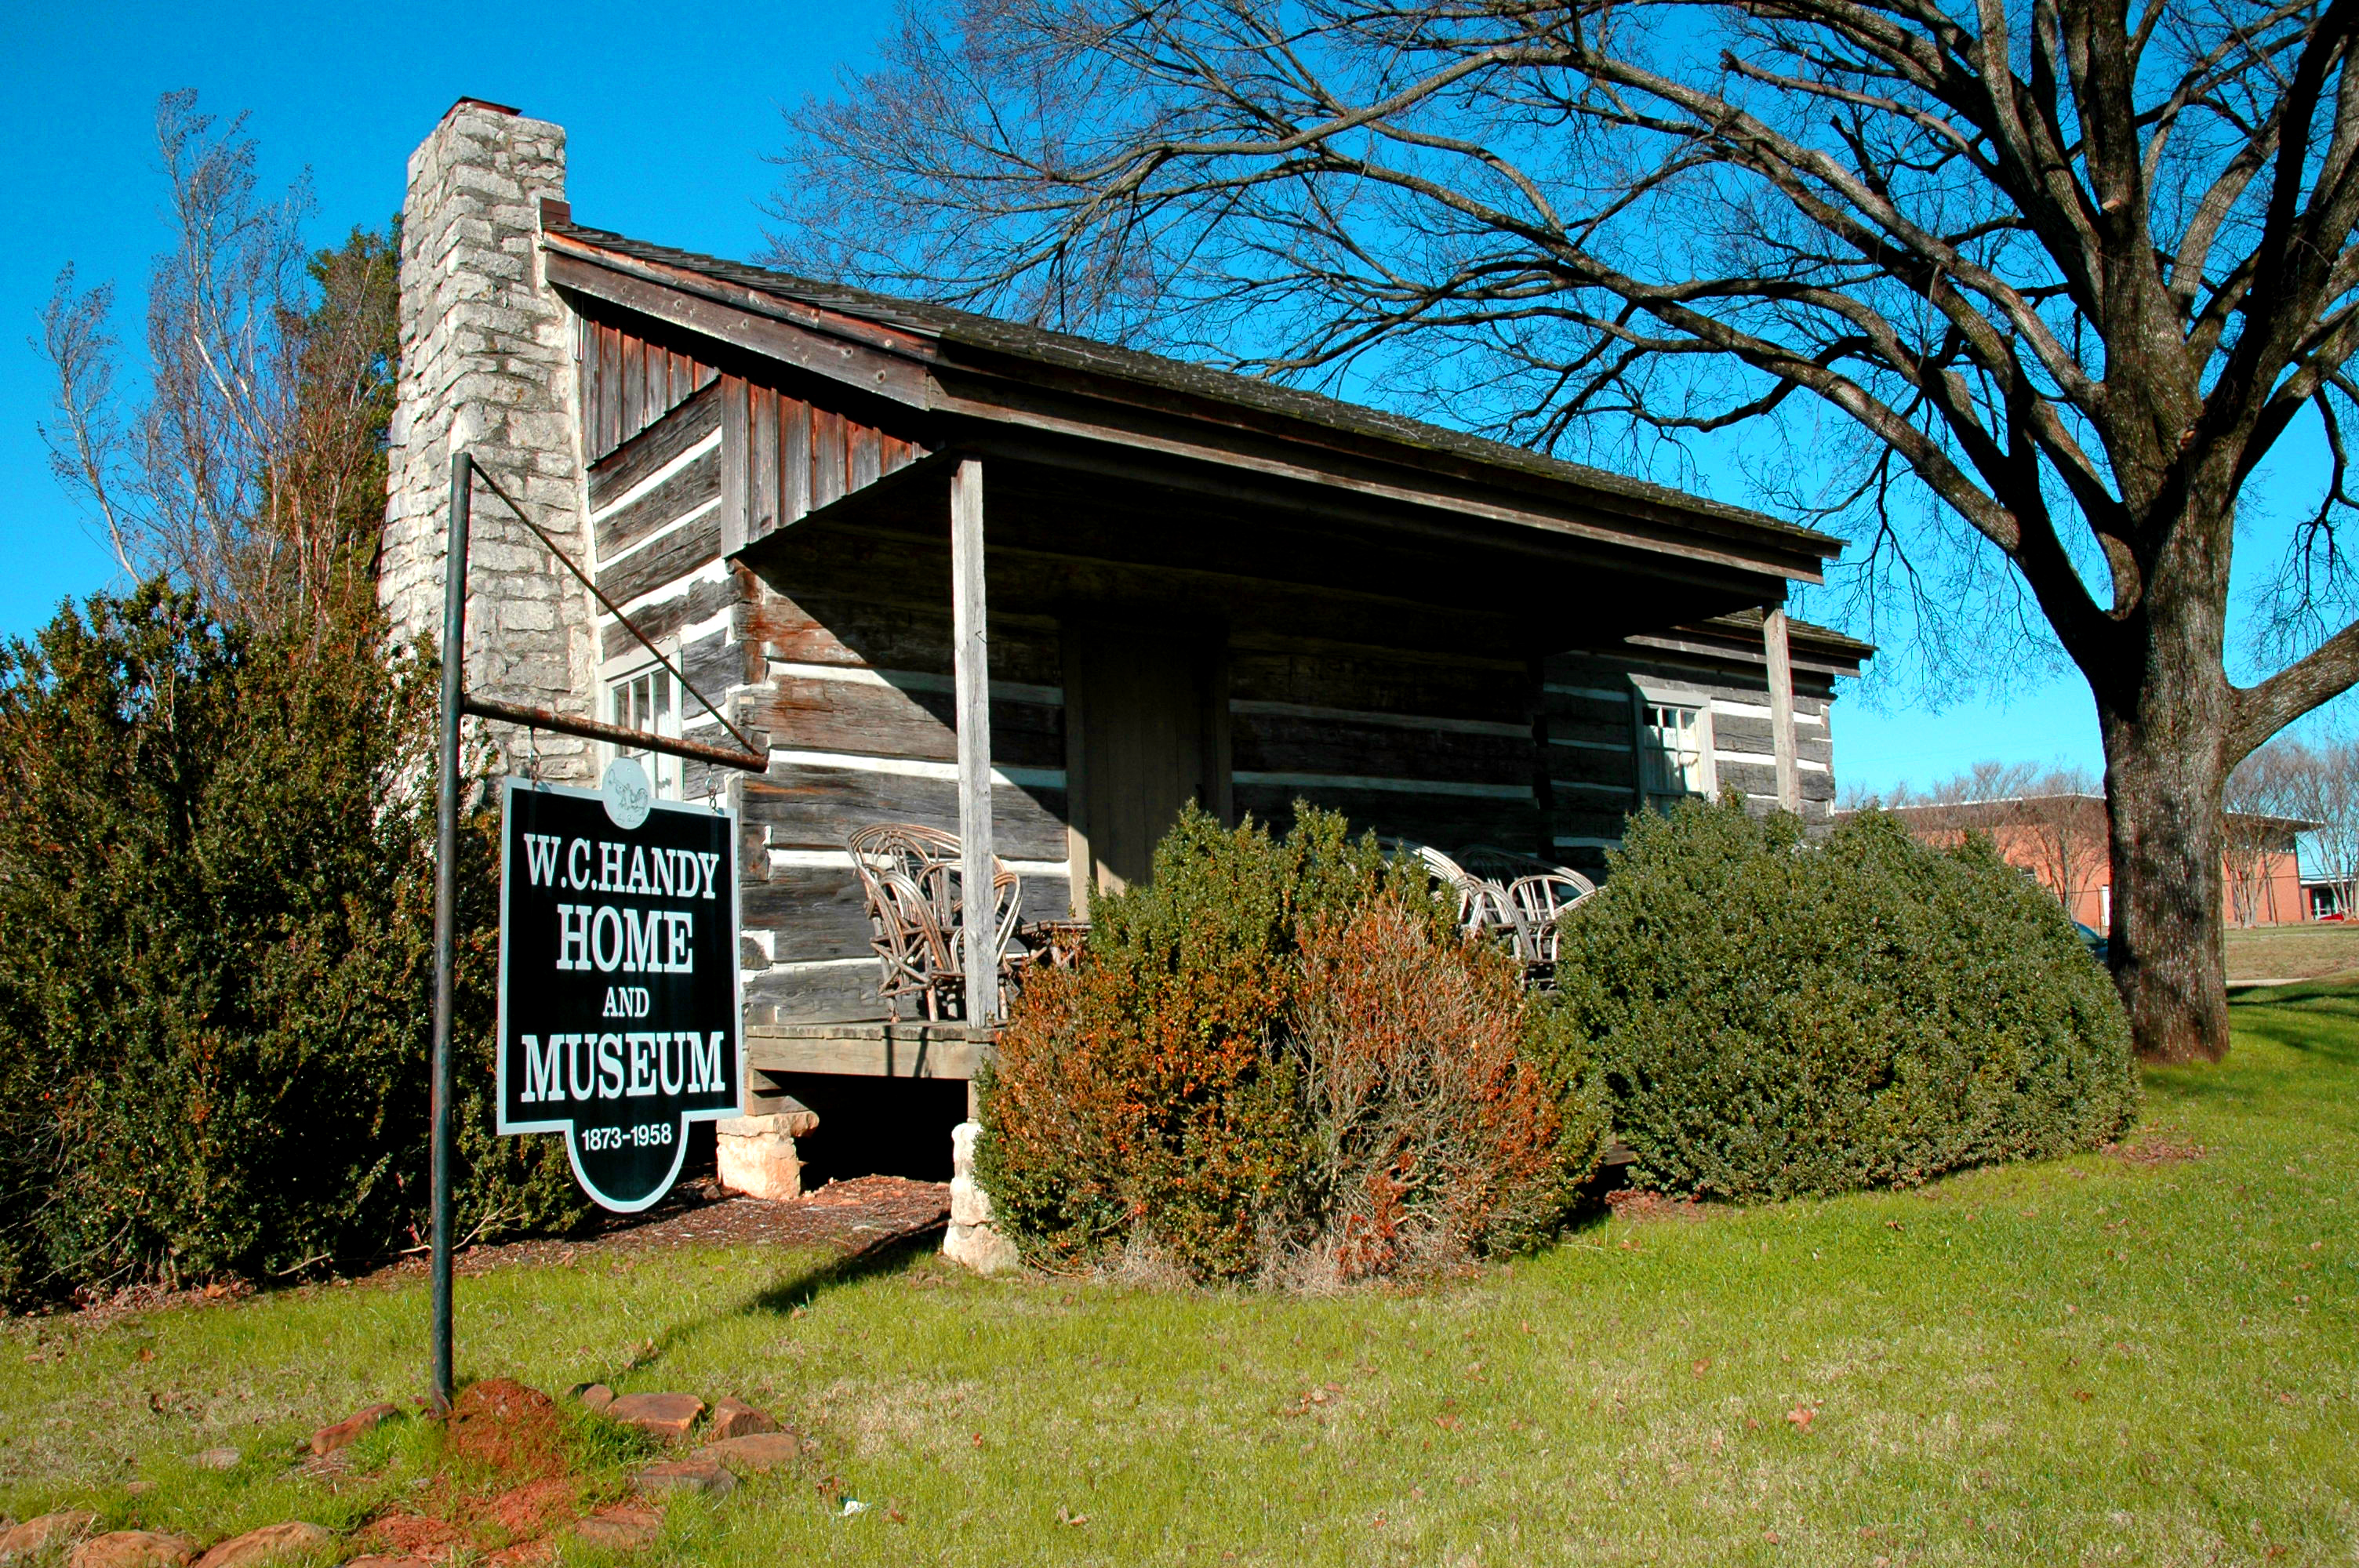 W.C. Handy Birthplace, Museum and Library